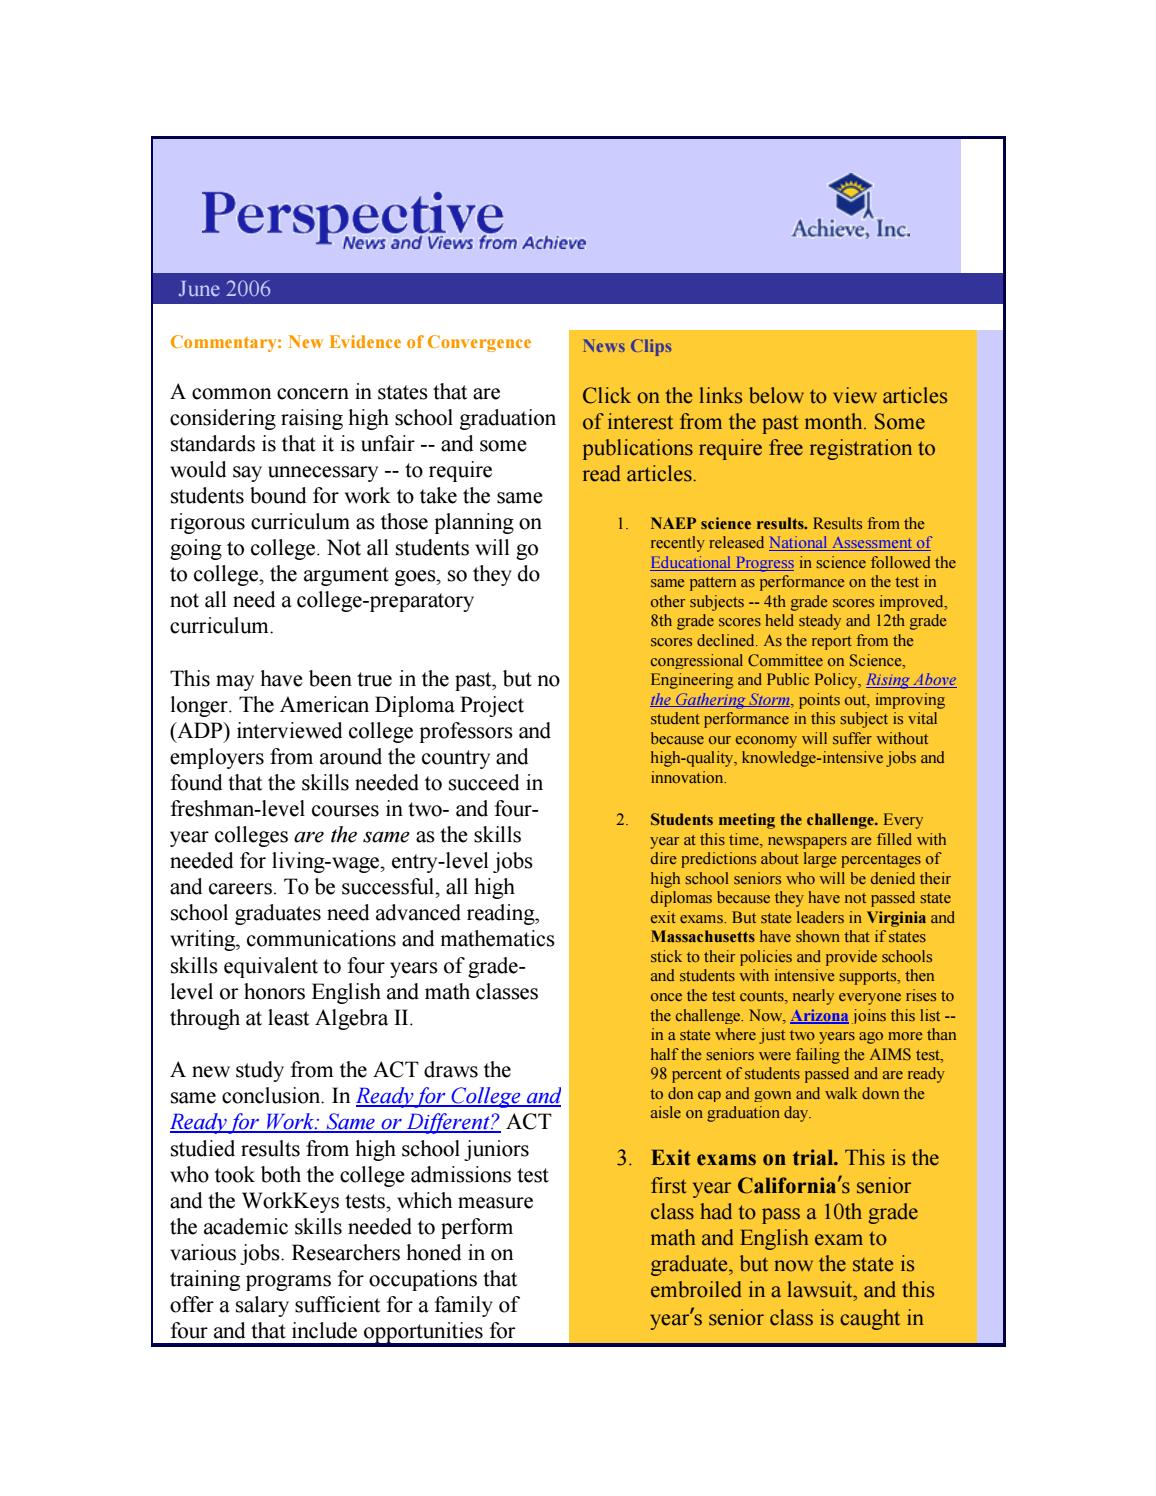 June 2006 Perspective Newsletter by Achieve, Inc  - issuu